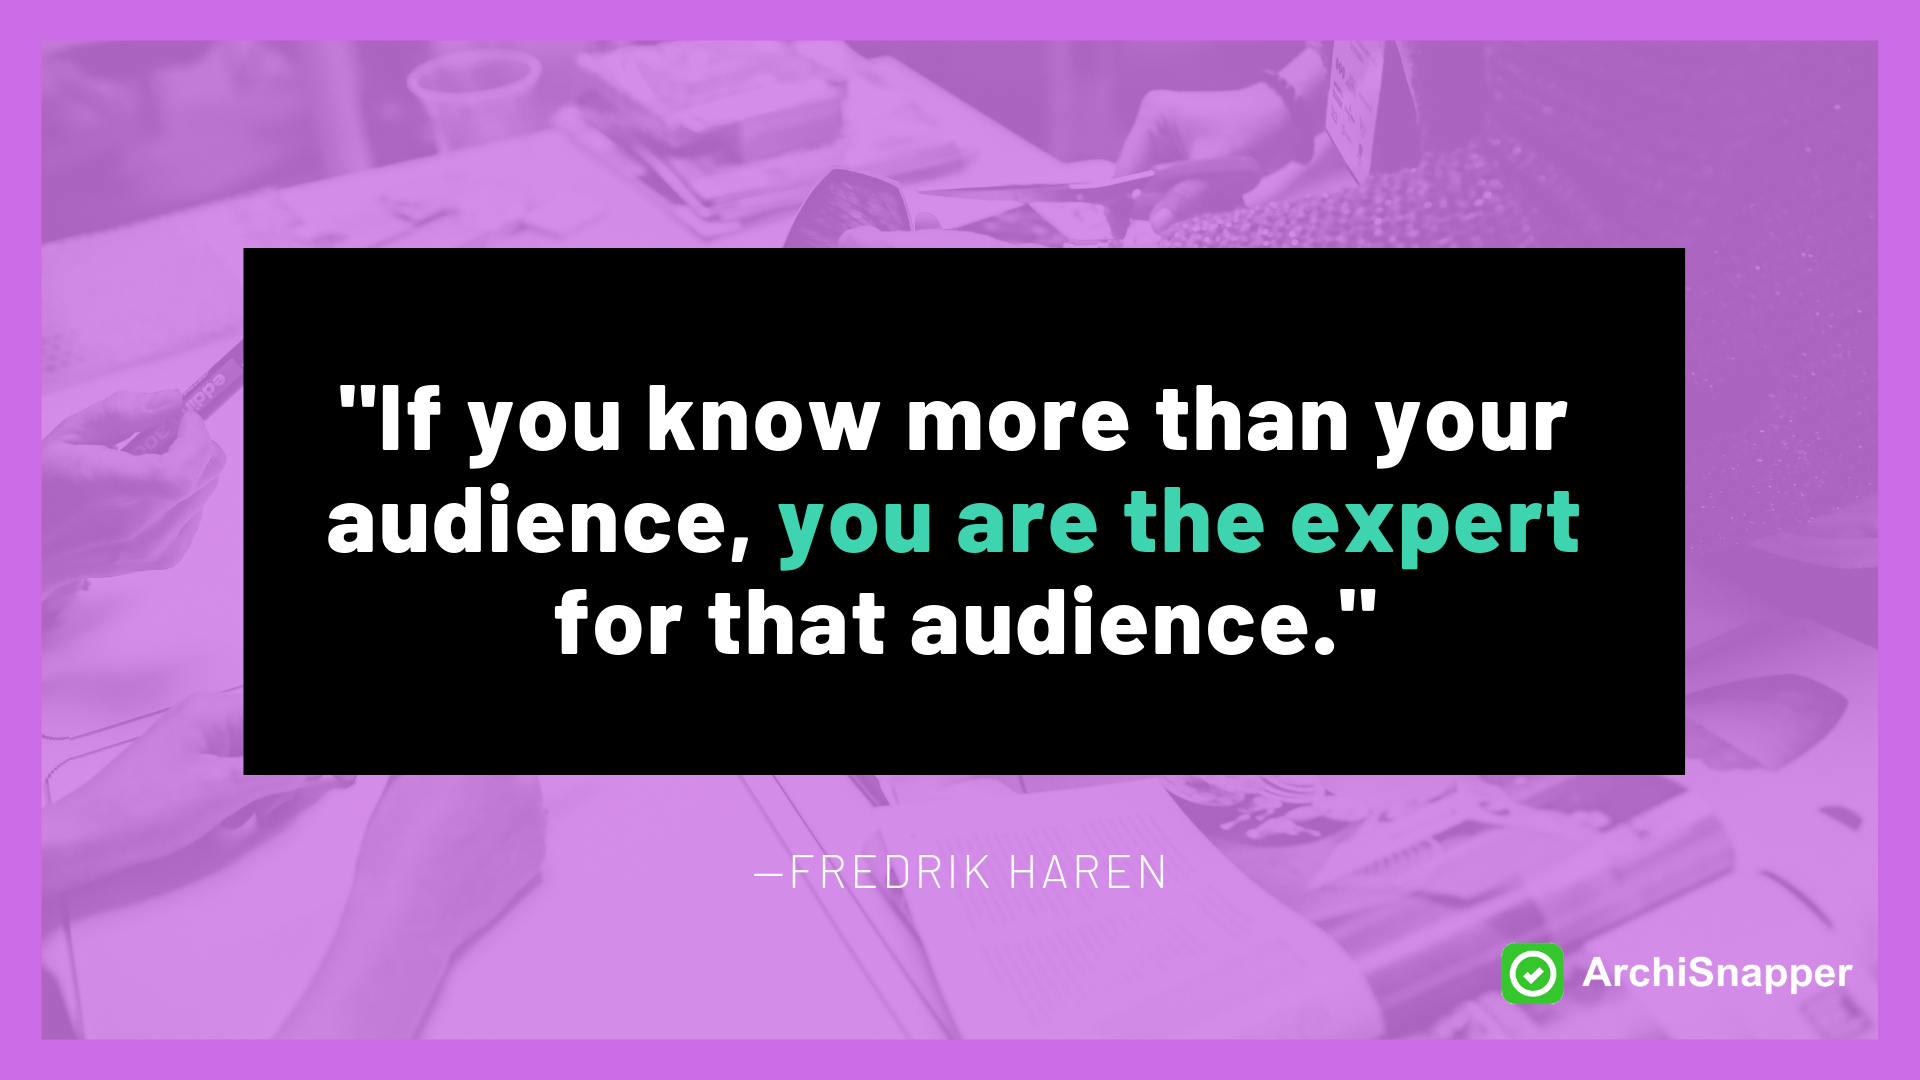 Fredrik Haren quote on being an expert   Archisnapper